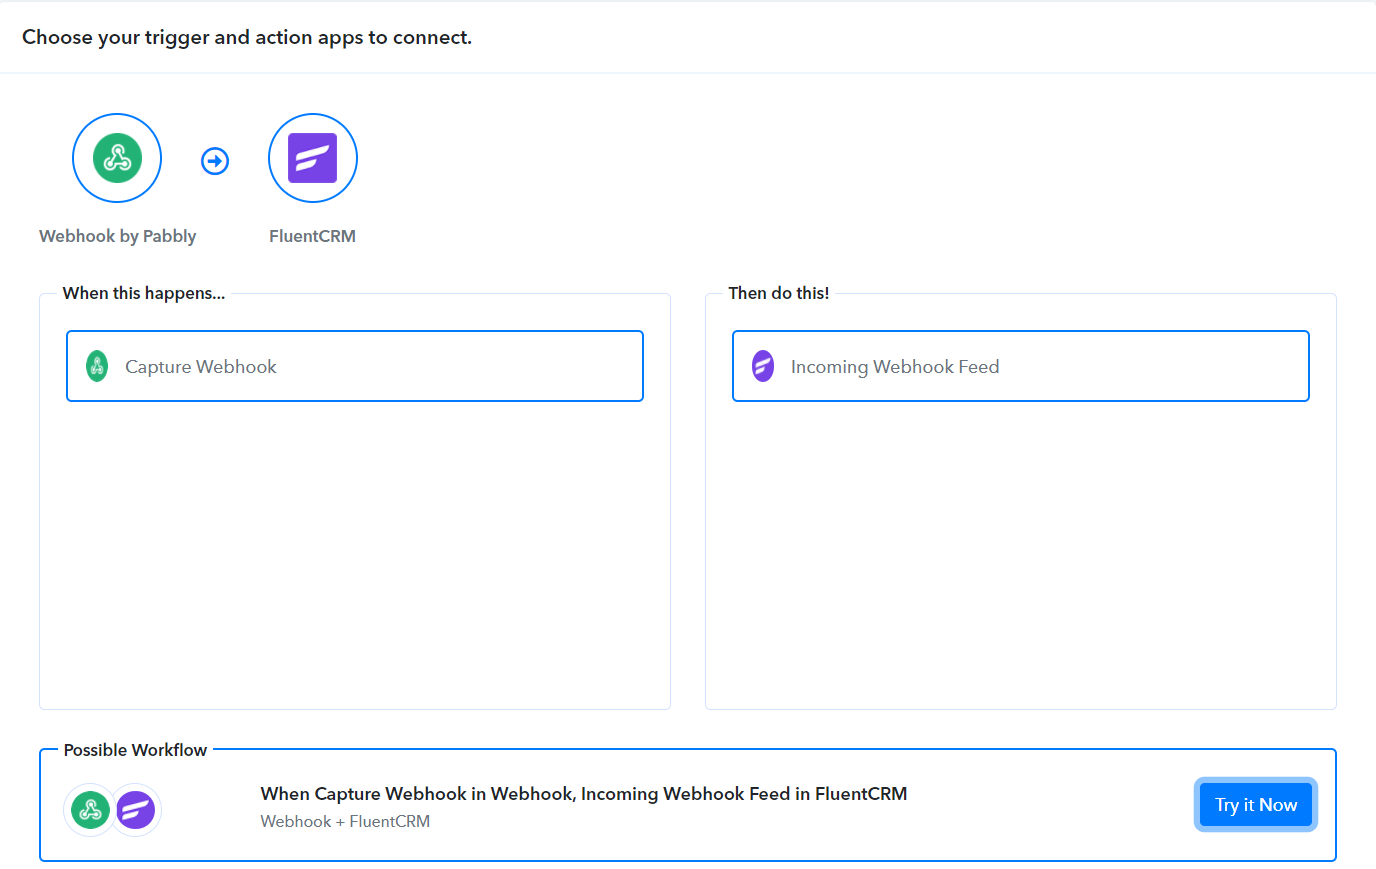 pabbly connect webhook and fluentcrm integration